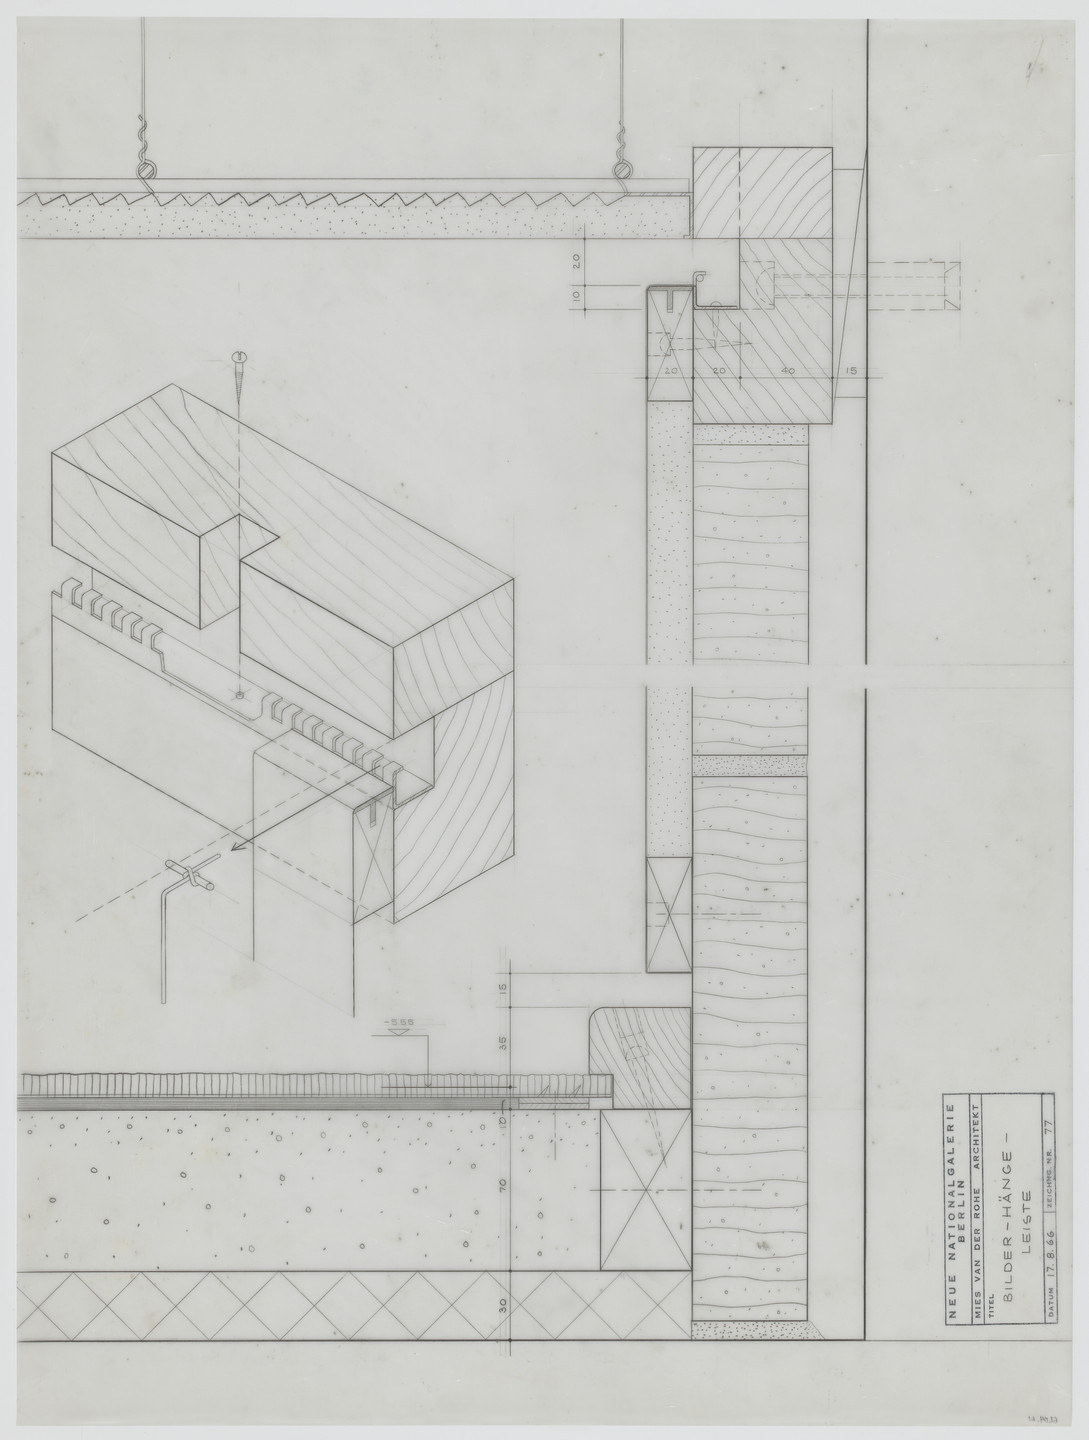 Ludwig Mies van der Rohe. New National Gallery, Berlin, Germany (Section, sectional perspective. Picture-hanging rod). 1966